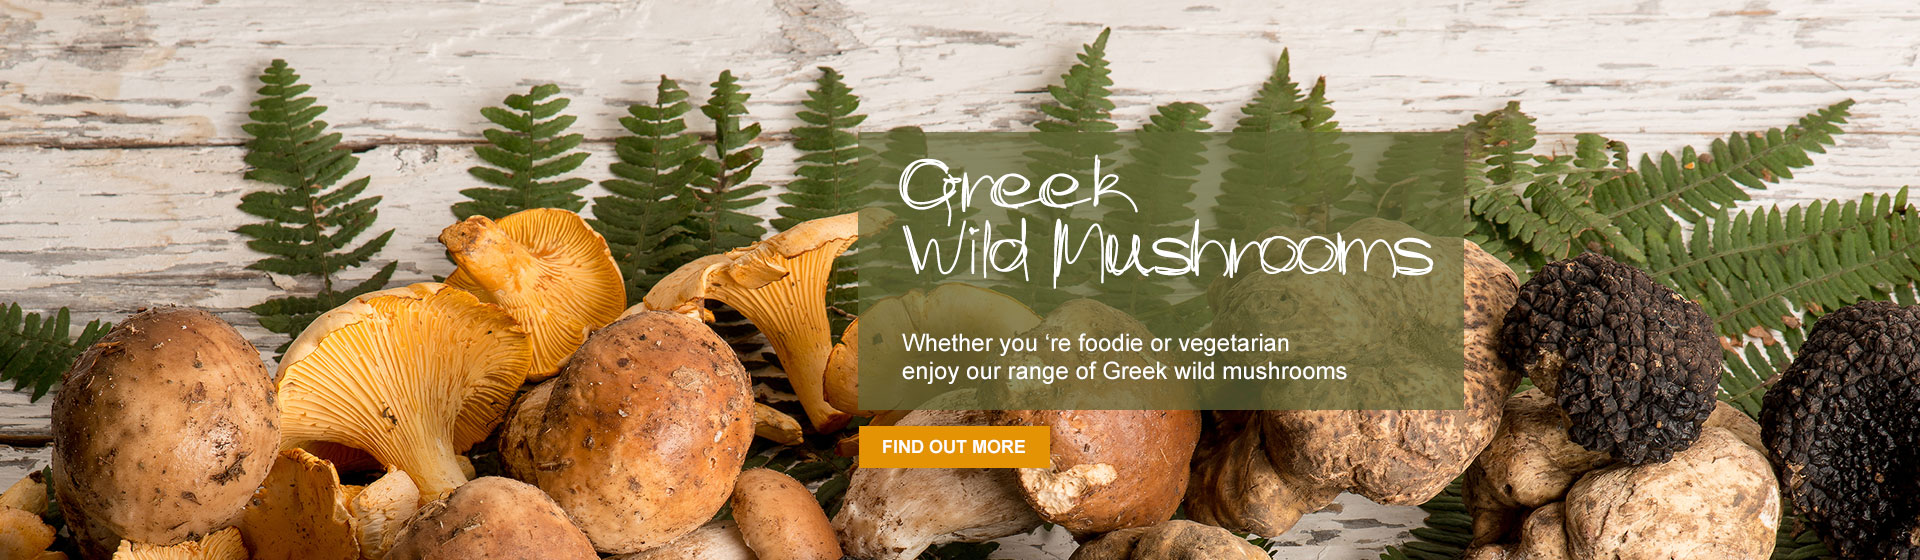 Greek Wild Mushrooms